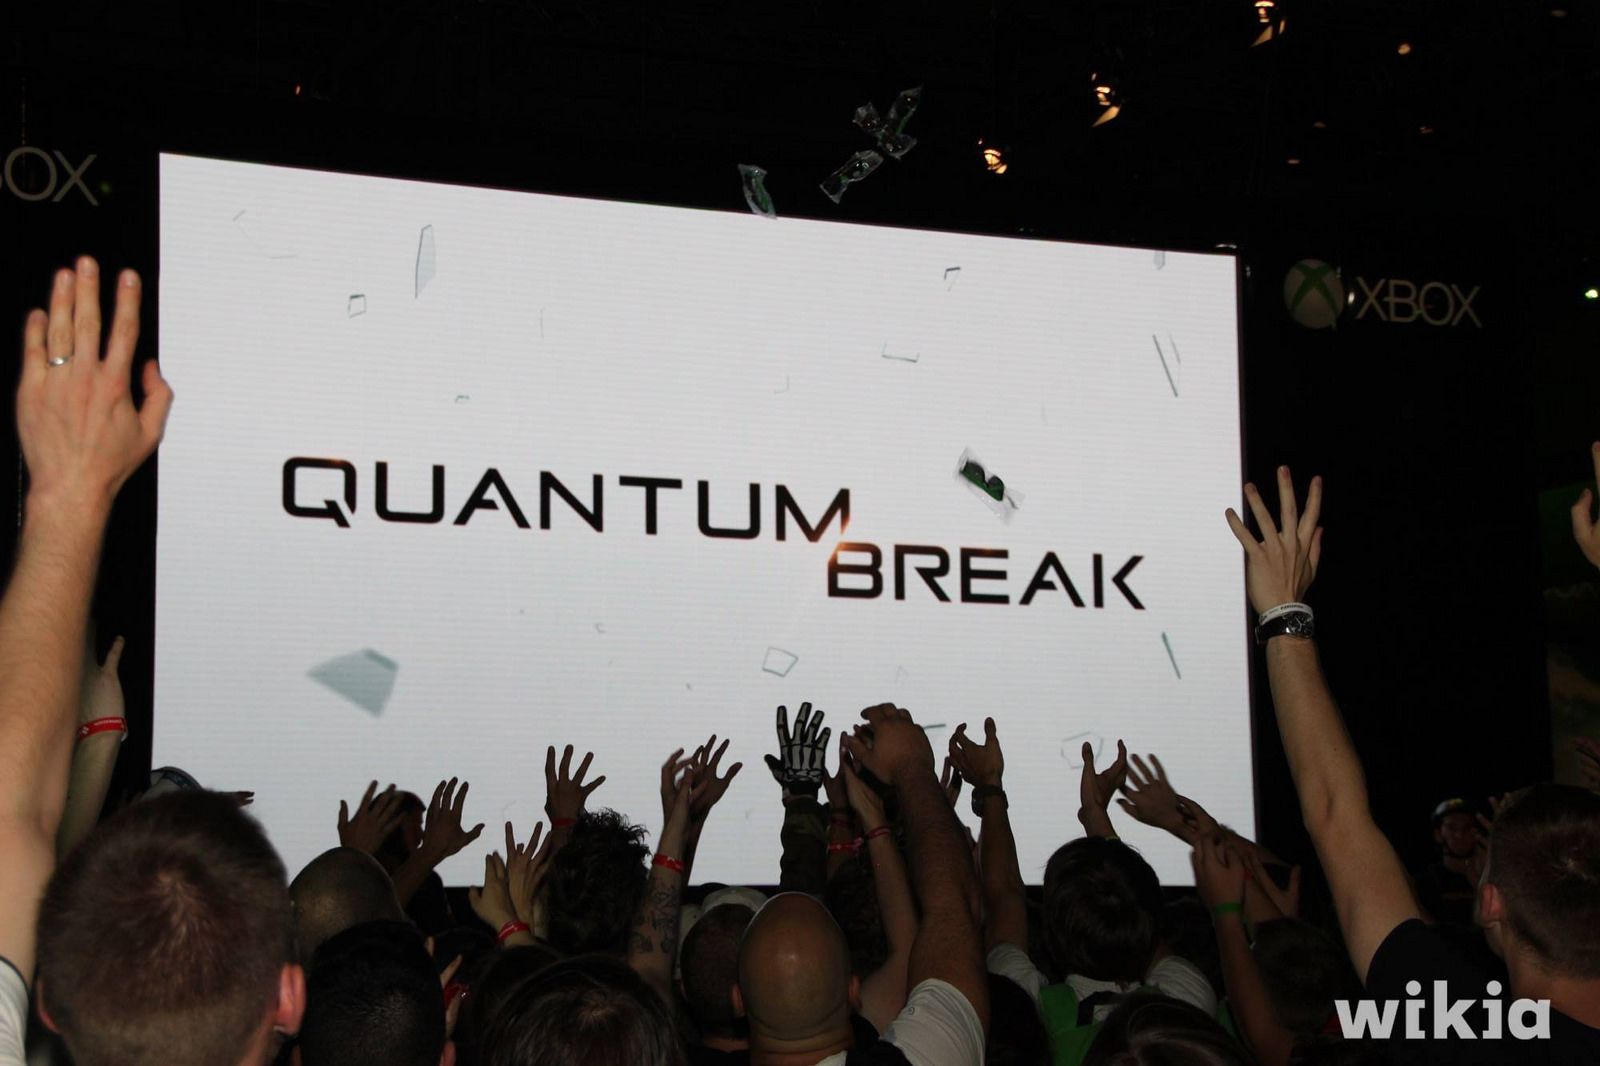 %Quantum Break: Released On Xbox One And PC% - %http://www.morningnewsusa.com/?p=57529&preview=true%